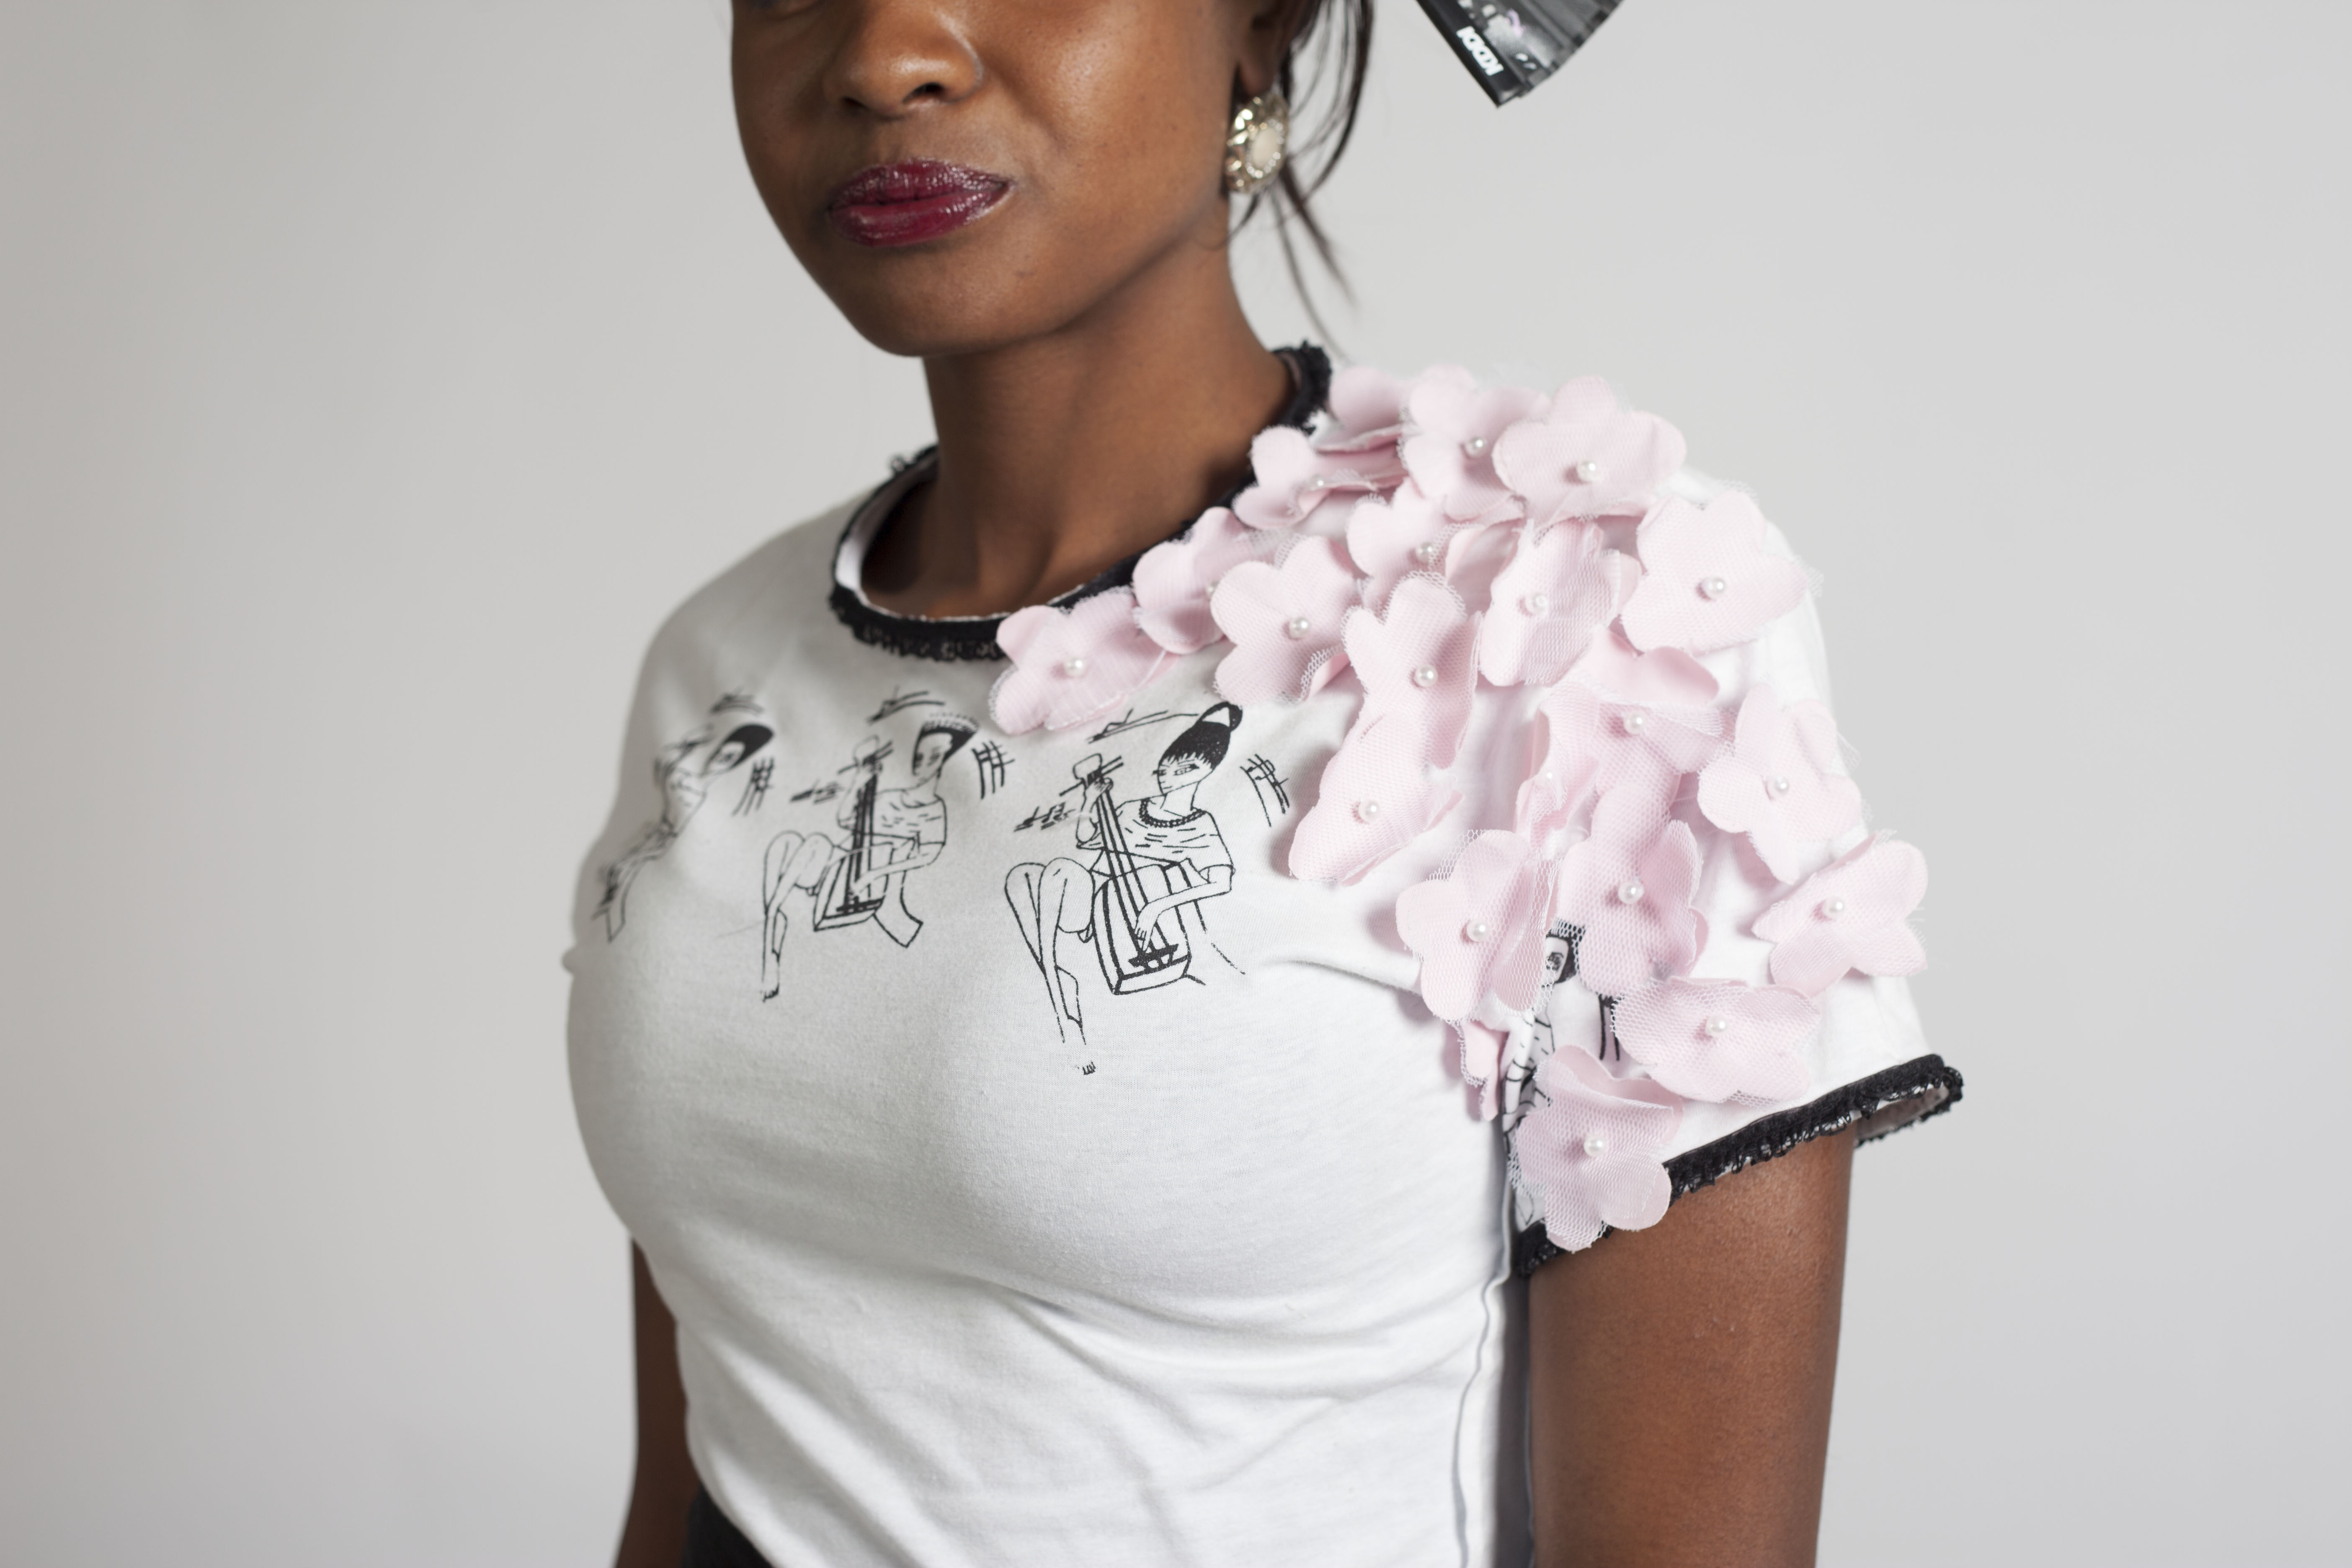 Design, Create and Embellish Your Own T-Shirt Fashion Design Project